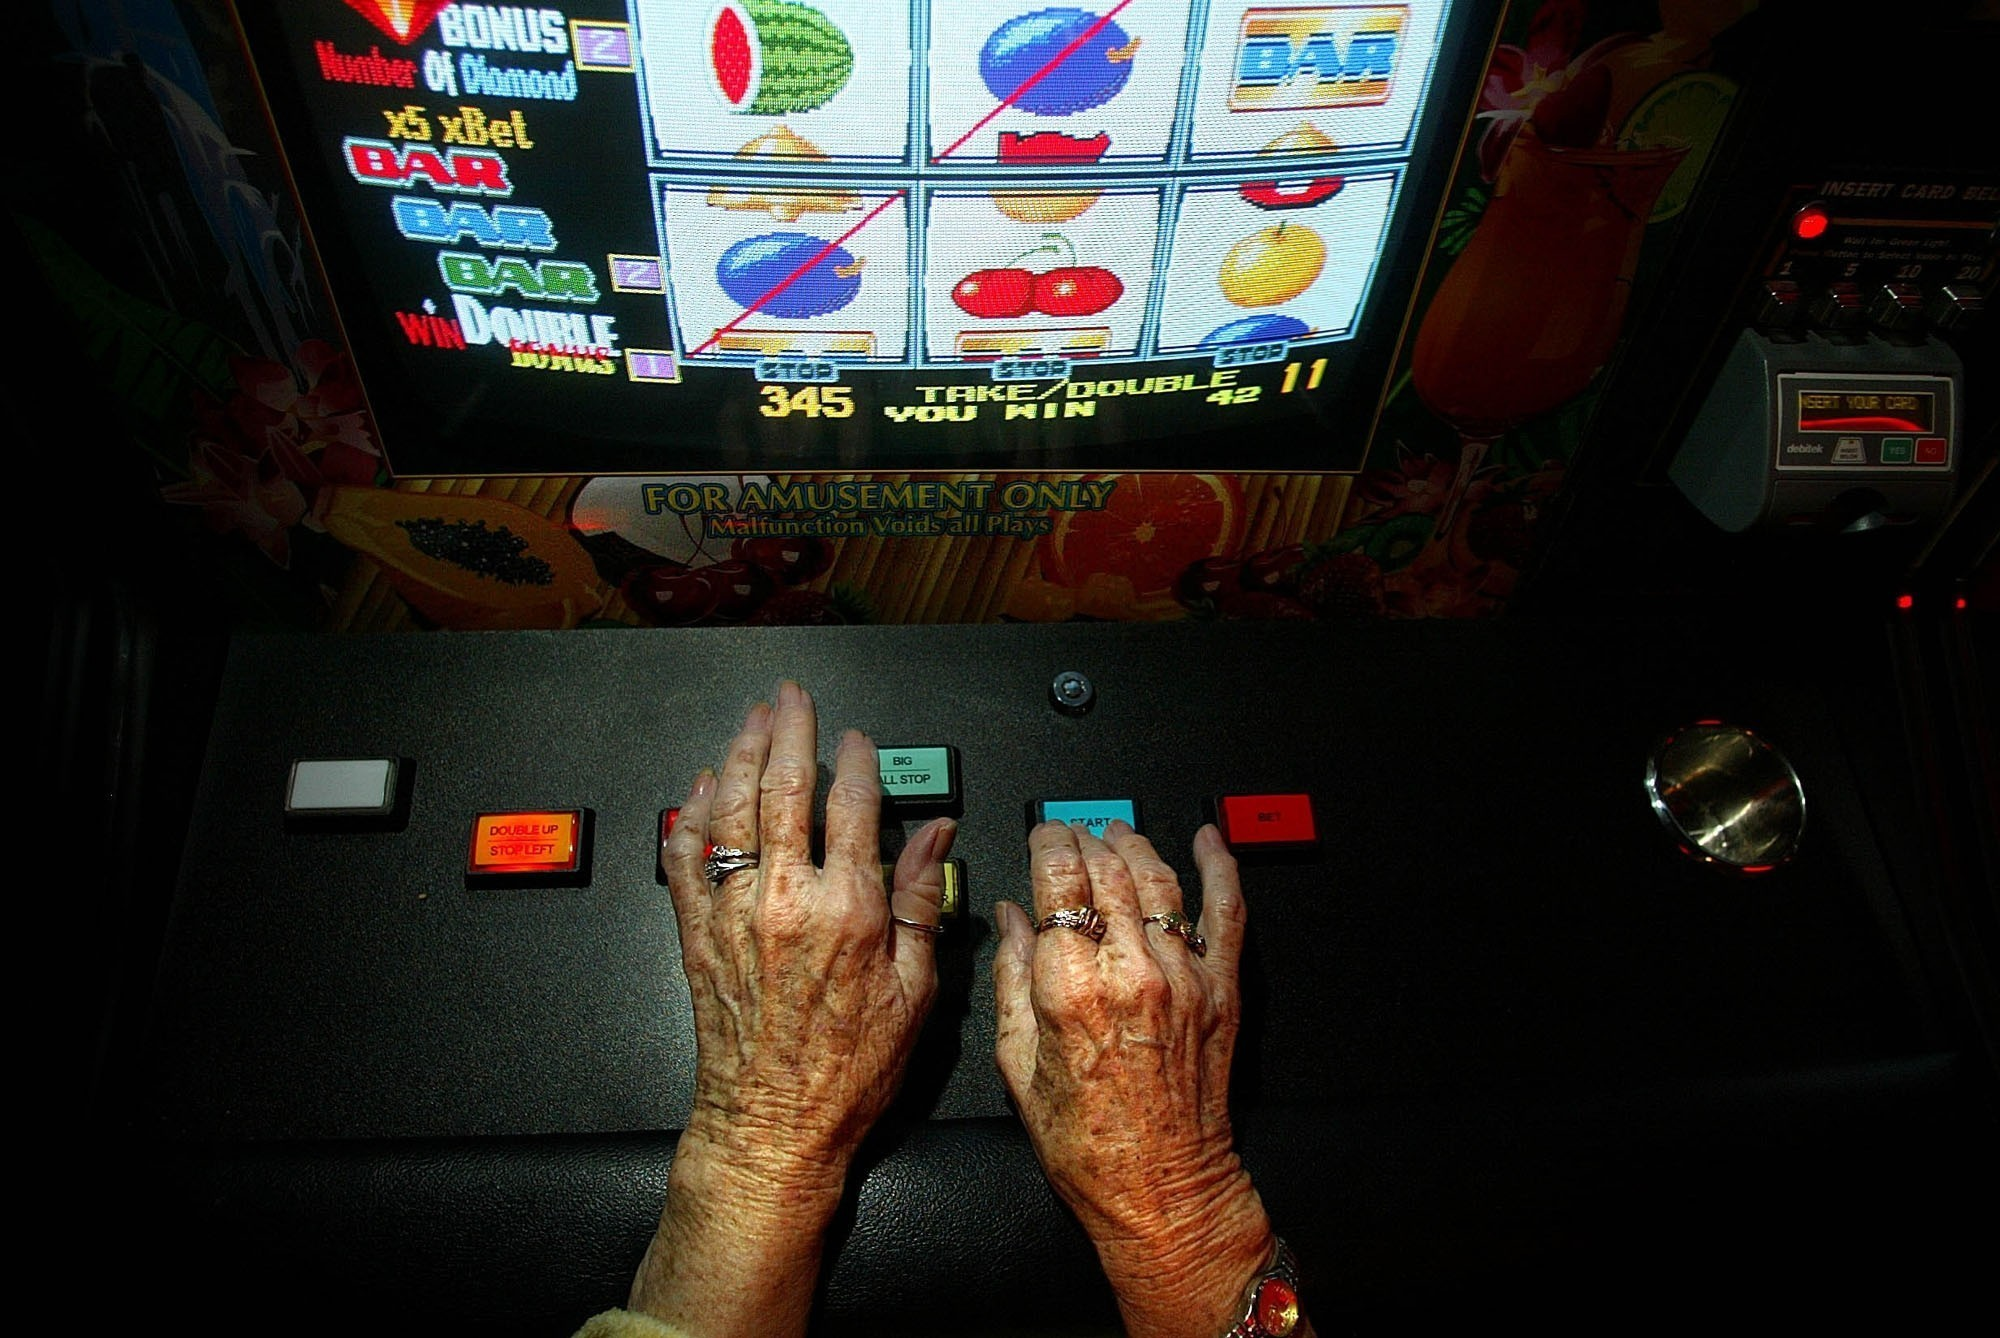 Fla law slot machines casino craps game play poker slot virtual yourbestonlinecasino.com